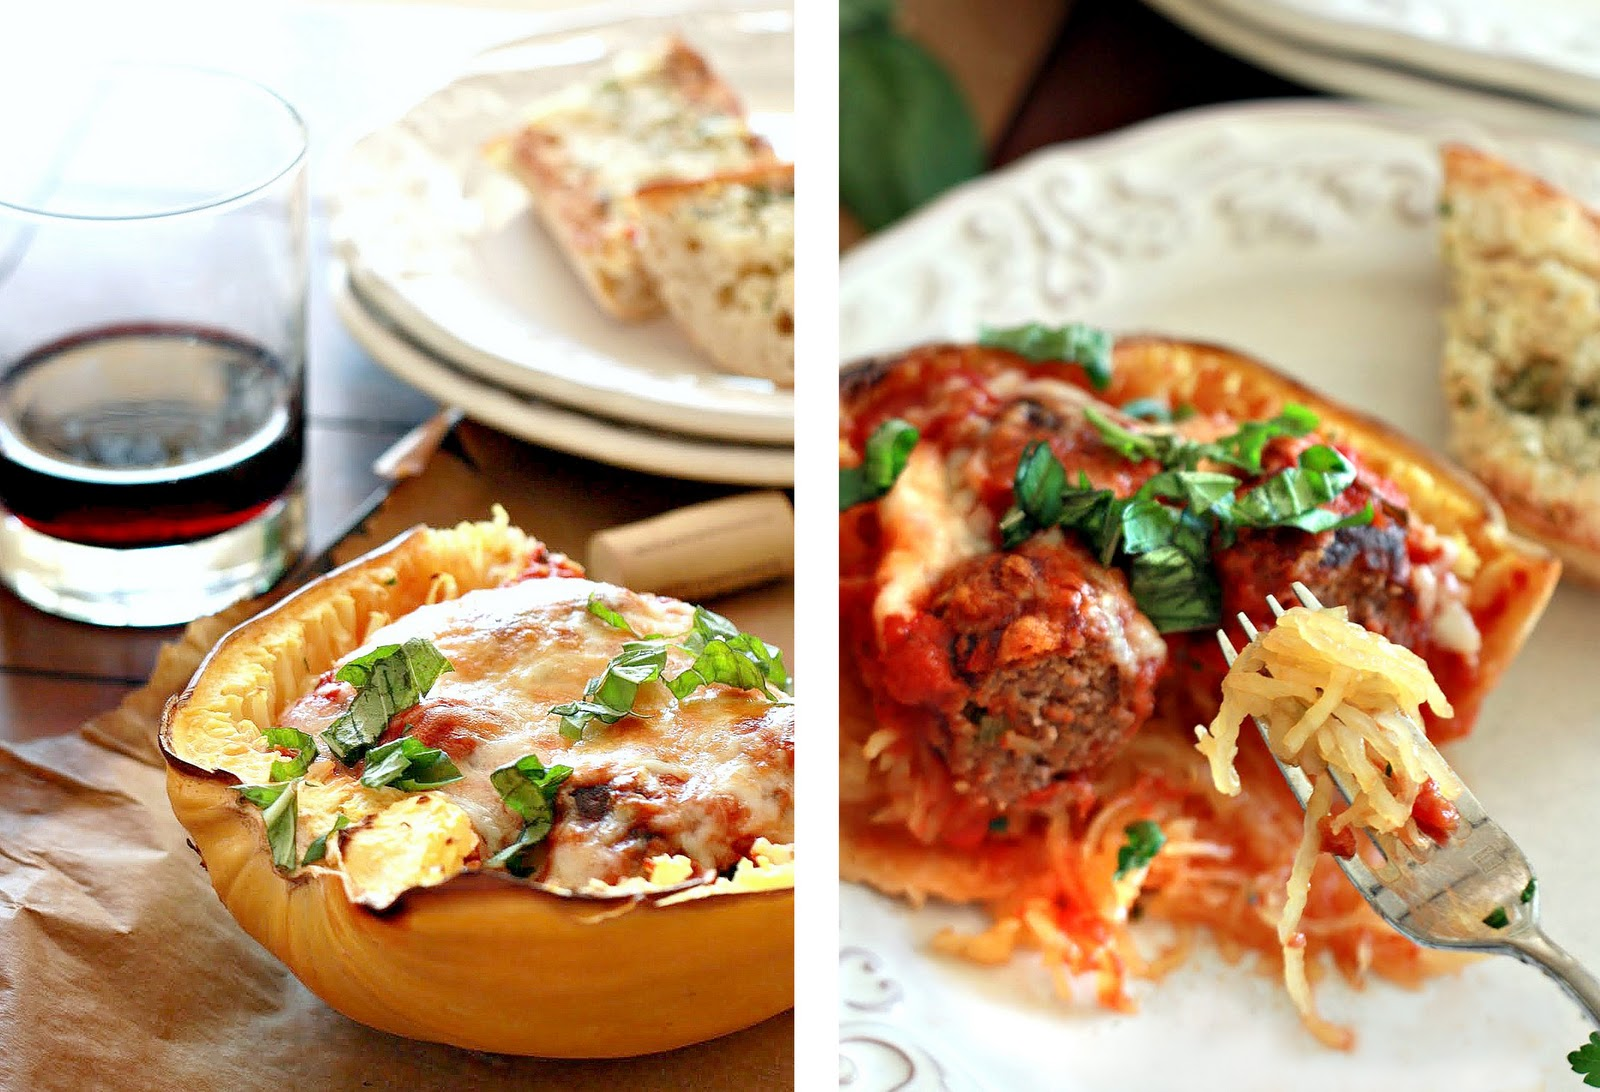 Baked Spaghetti and Meatballs-No pasta | health and Beauty 4Ever